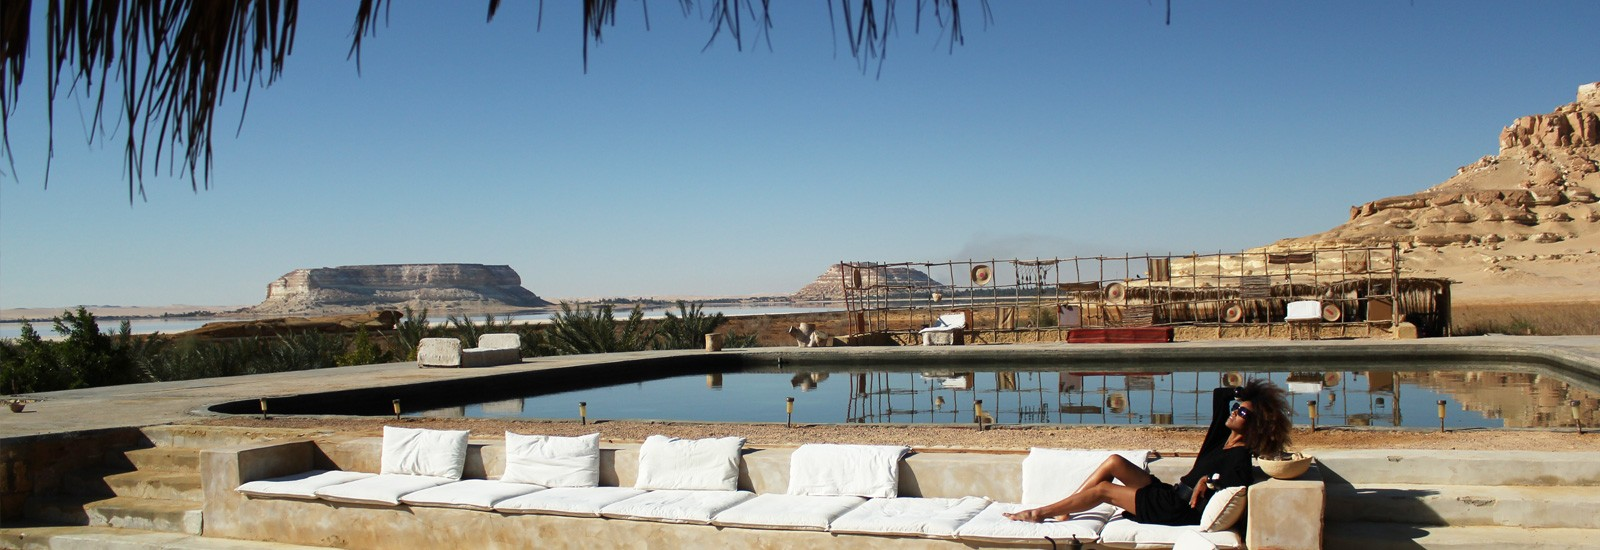 Eco-Chic Living at Siwa Oasis